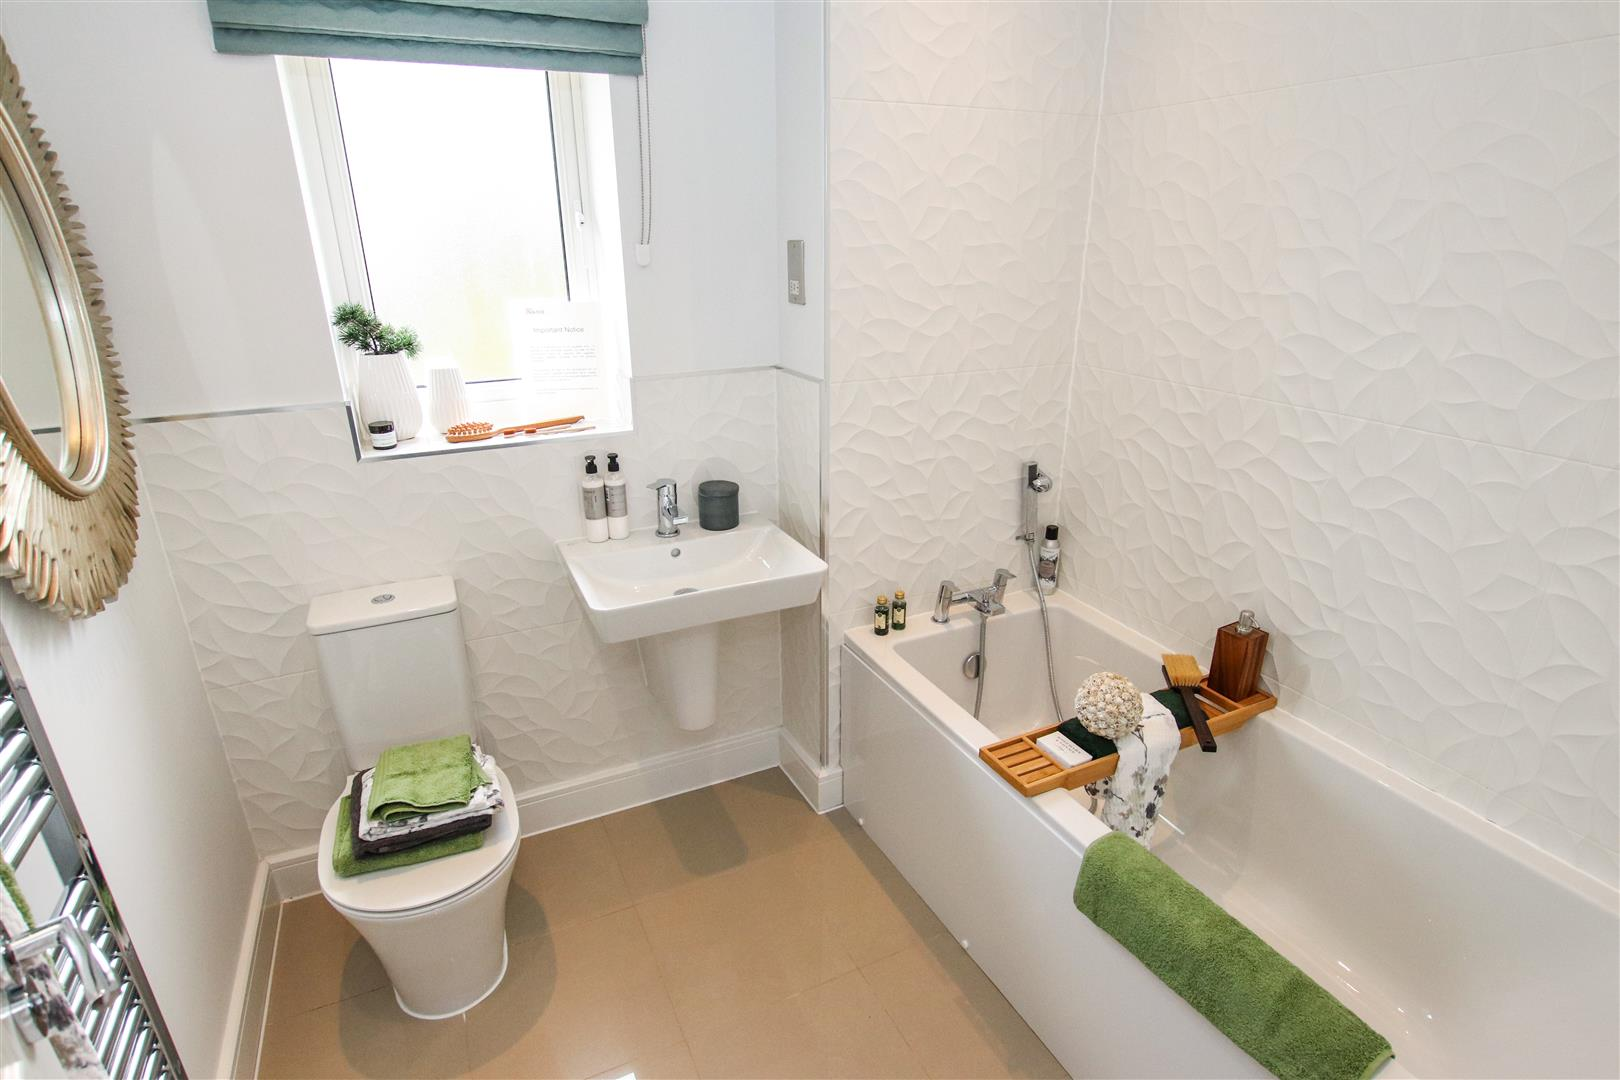 LUXURY FIRST FLOOR BATHROOM